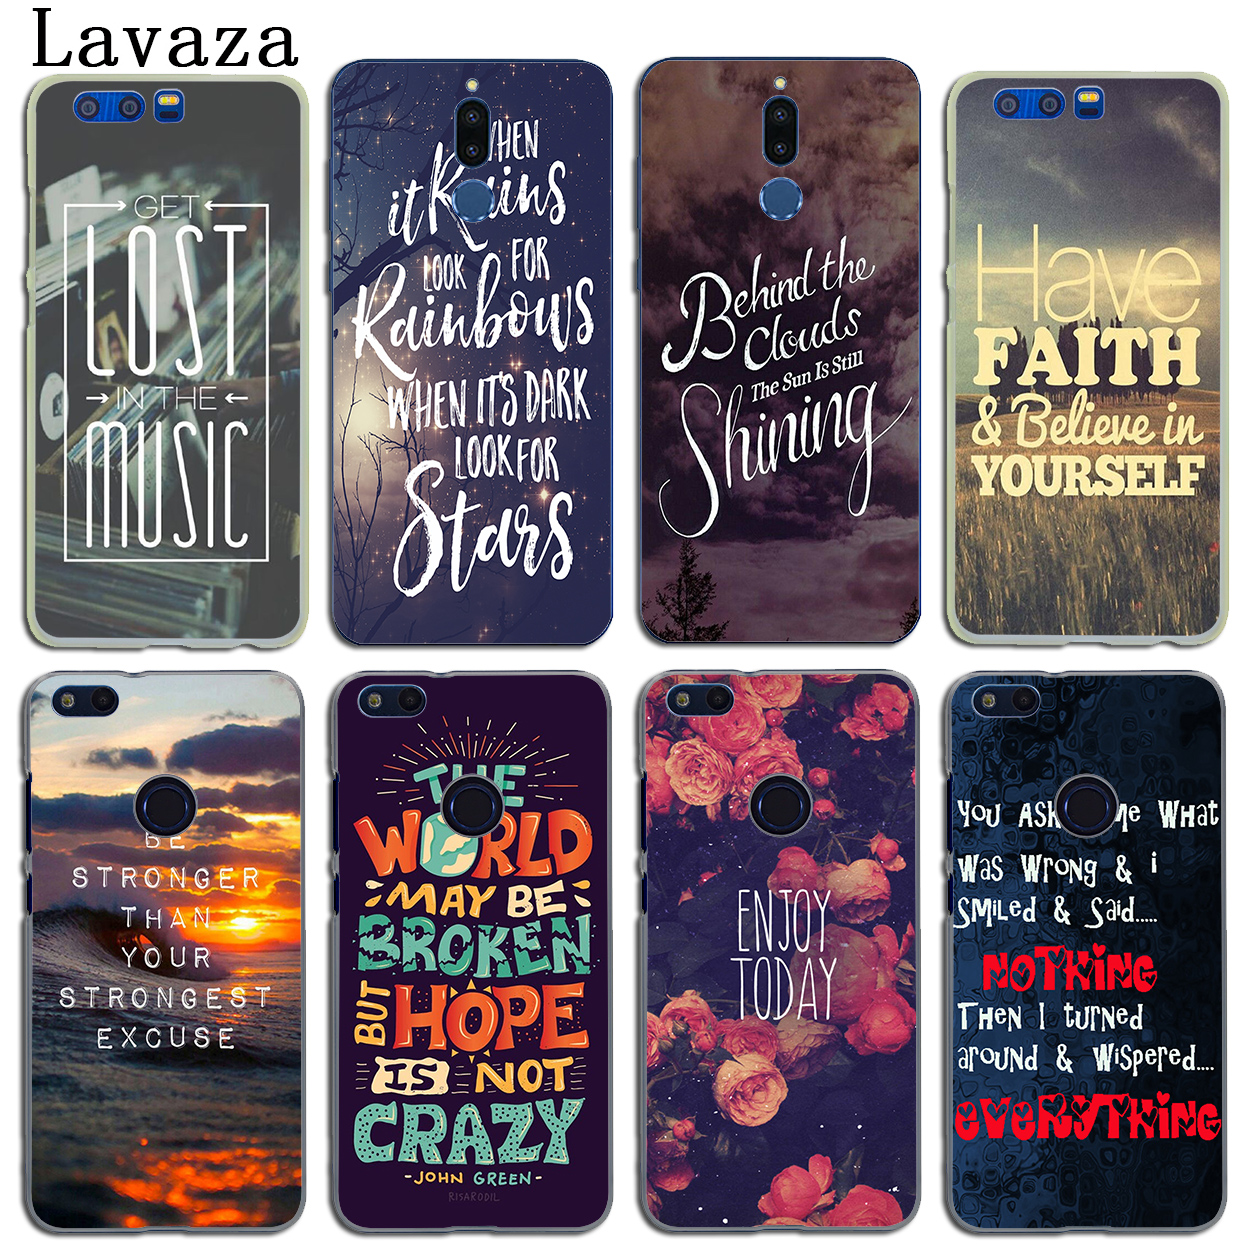 Lavaza Beautiful Rose Flower Sky City Phone Case for Huawei Y6 Y3 Y5 II Y7 2017 Nova 2 Plus 2S 2i Honor 9 8 Lite 7 6 6A 7X 6X ...